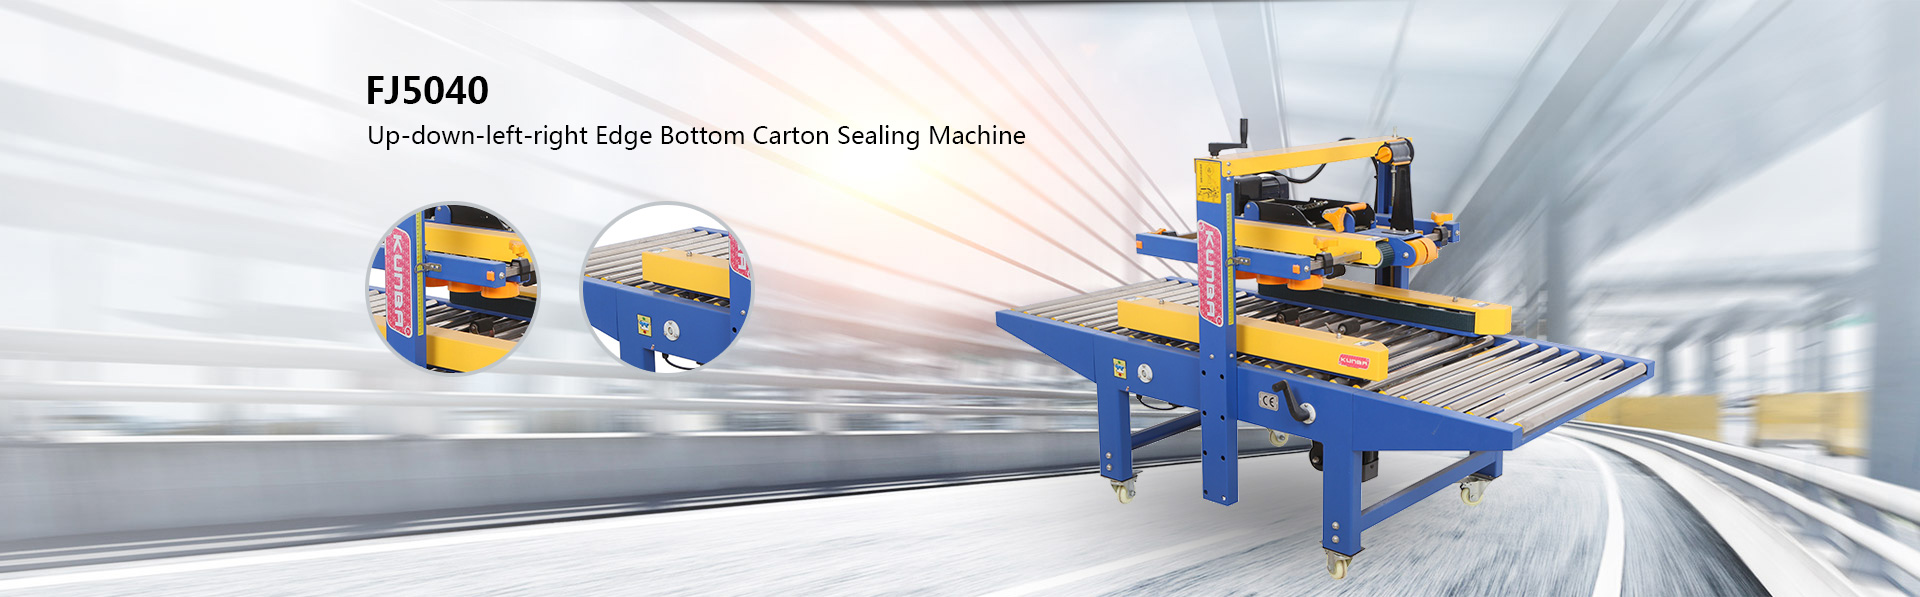 Carton Sealing Machine | wenzhou huaqiao packing machinery